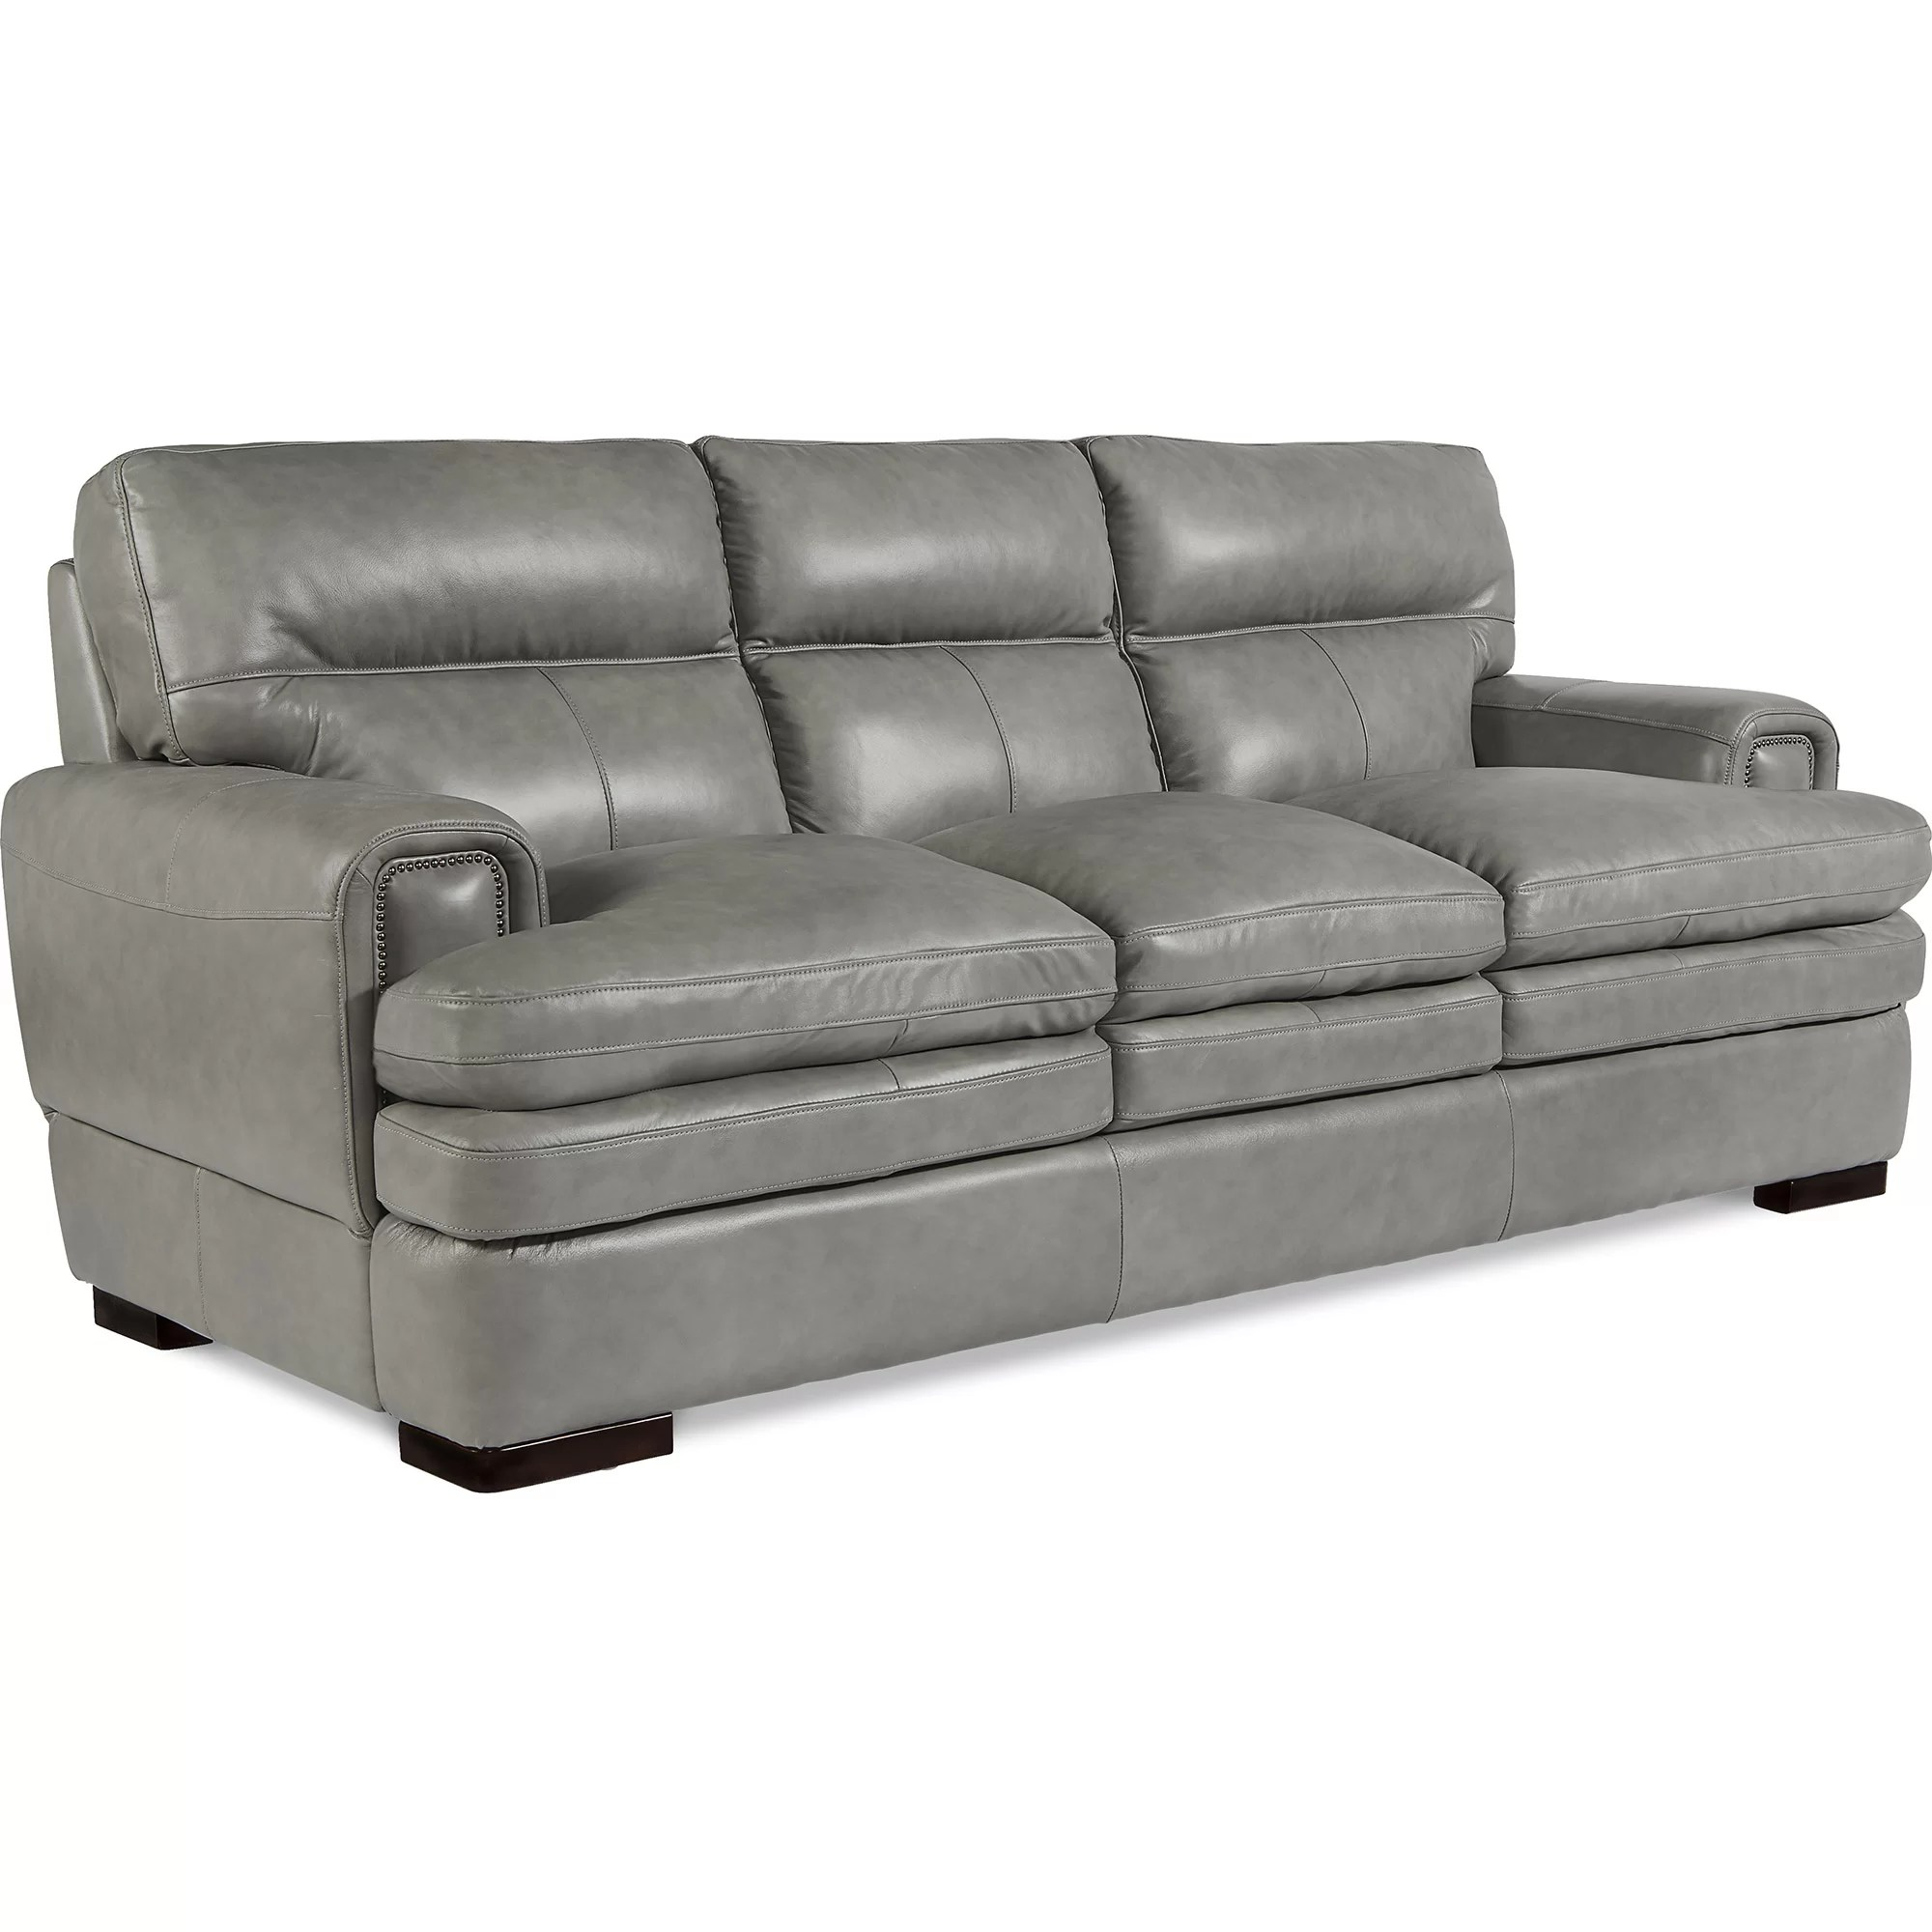 Leather Sofa La Z Boy Jake Leather Sofa